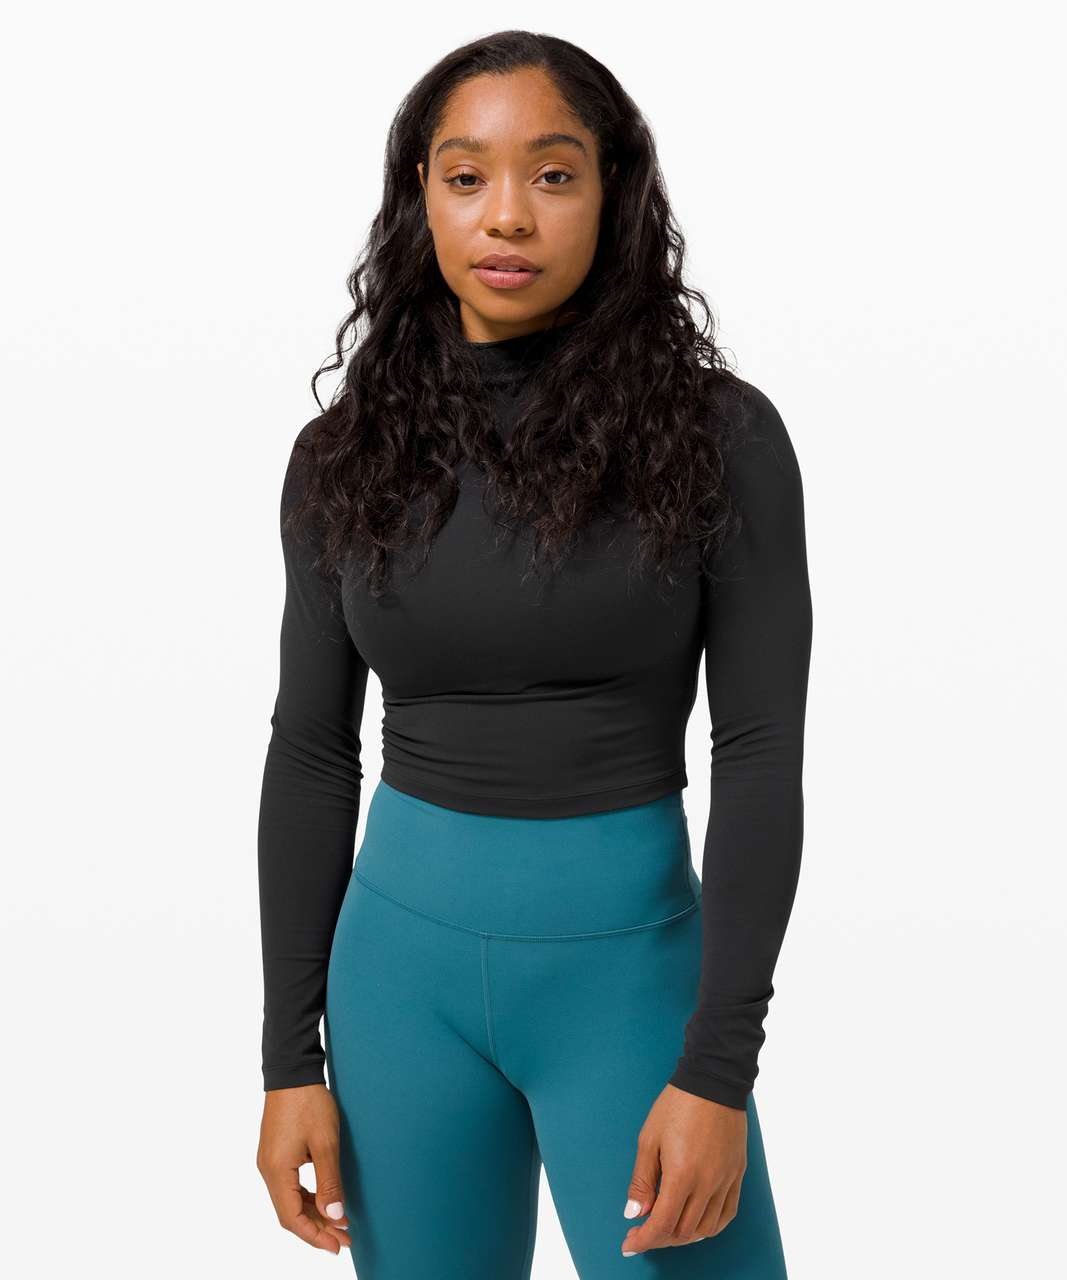 Lululemon All Aligned Mock Neck Long Sleeve - Black